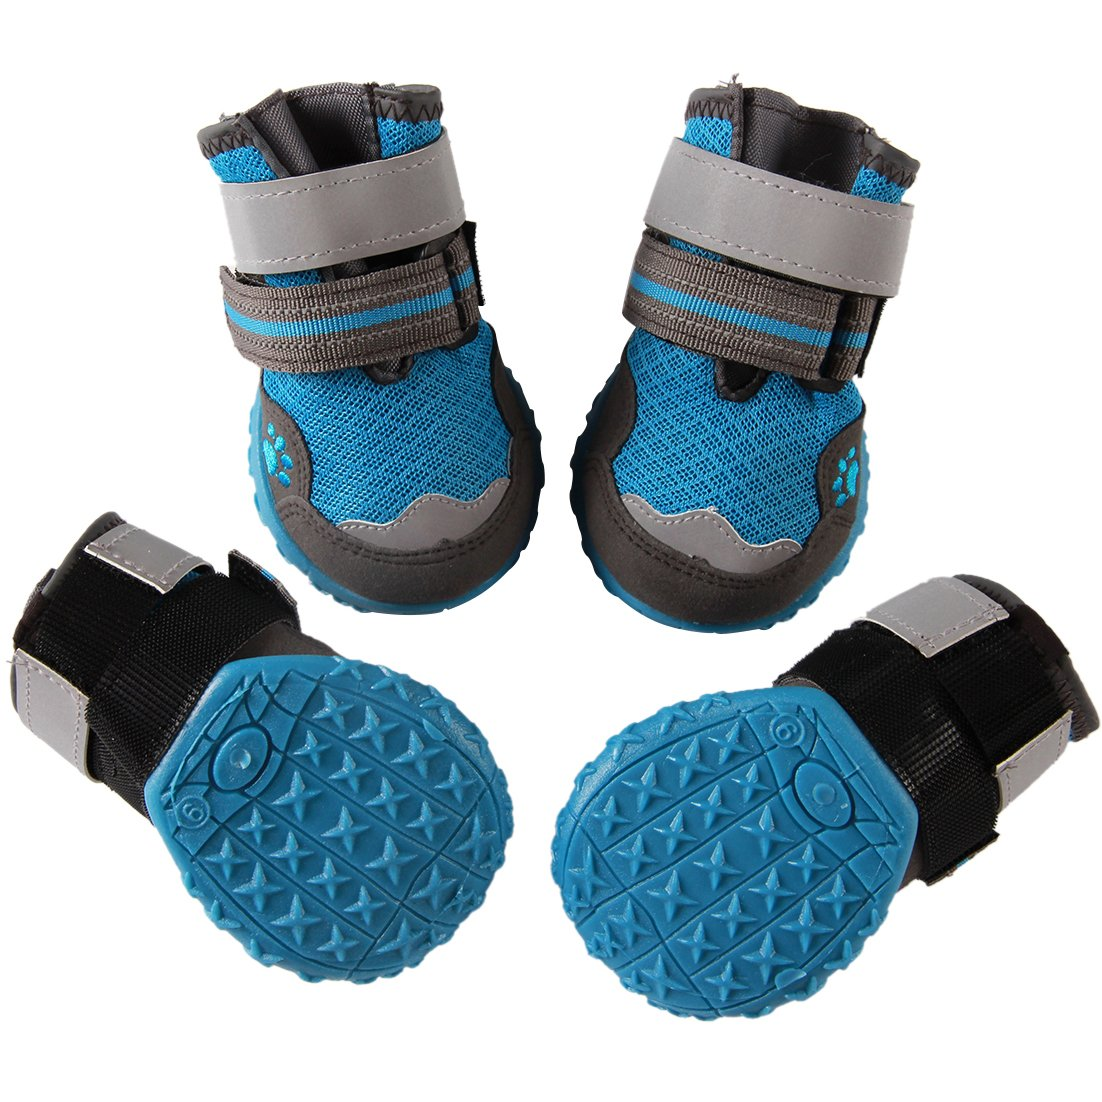 vecomfy Breathable Mesh Dog Shoes for Small Dogs,4-Boots Summer Hot Pavement Protect Paws Dog Boots,Waterproof Non-Slip Blue,Size 5 by vecomfy